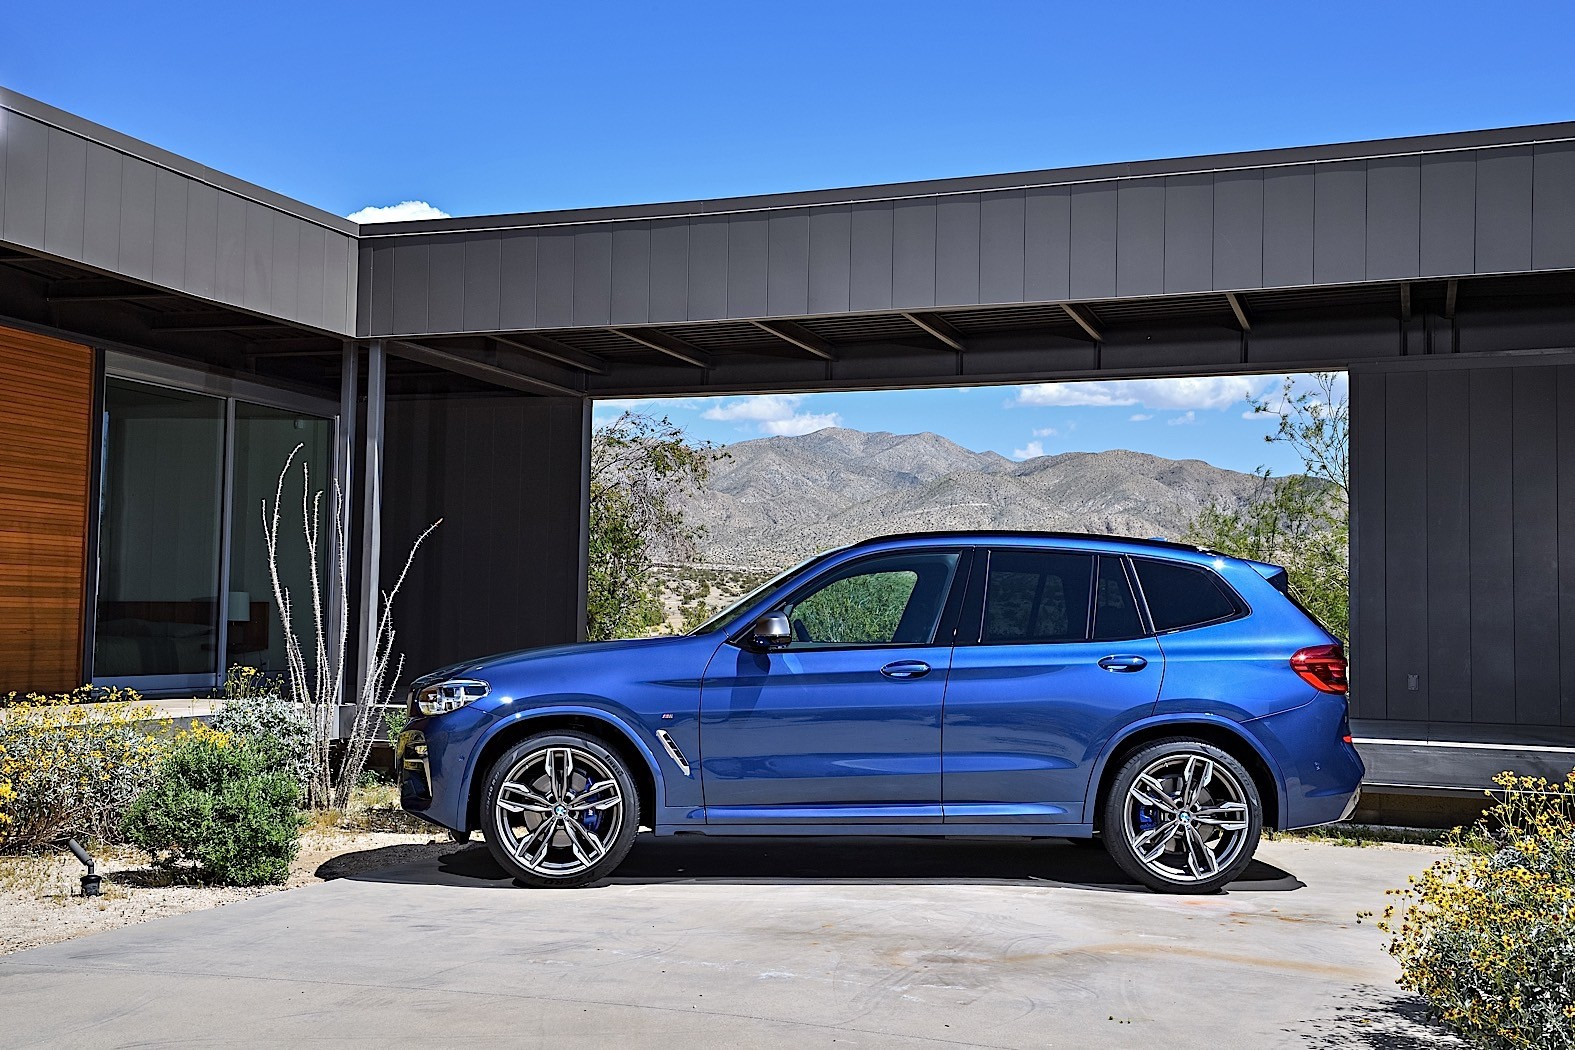 2018 Bmw X3 G01 Priced In The U S From 42 450 For The Xdrive30i